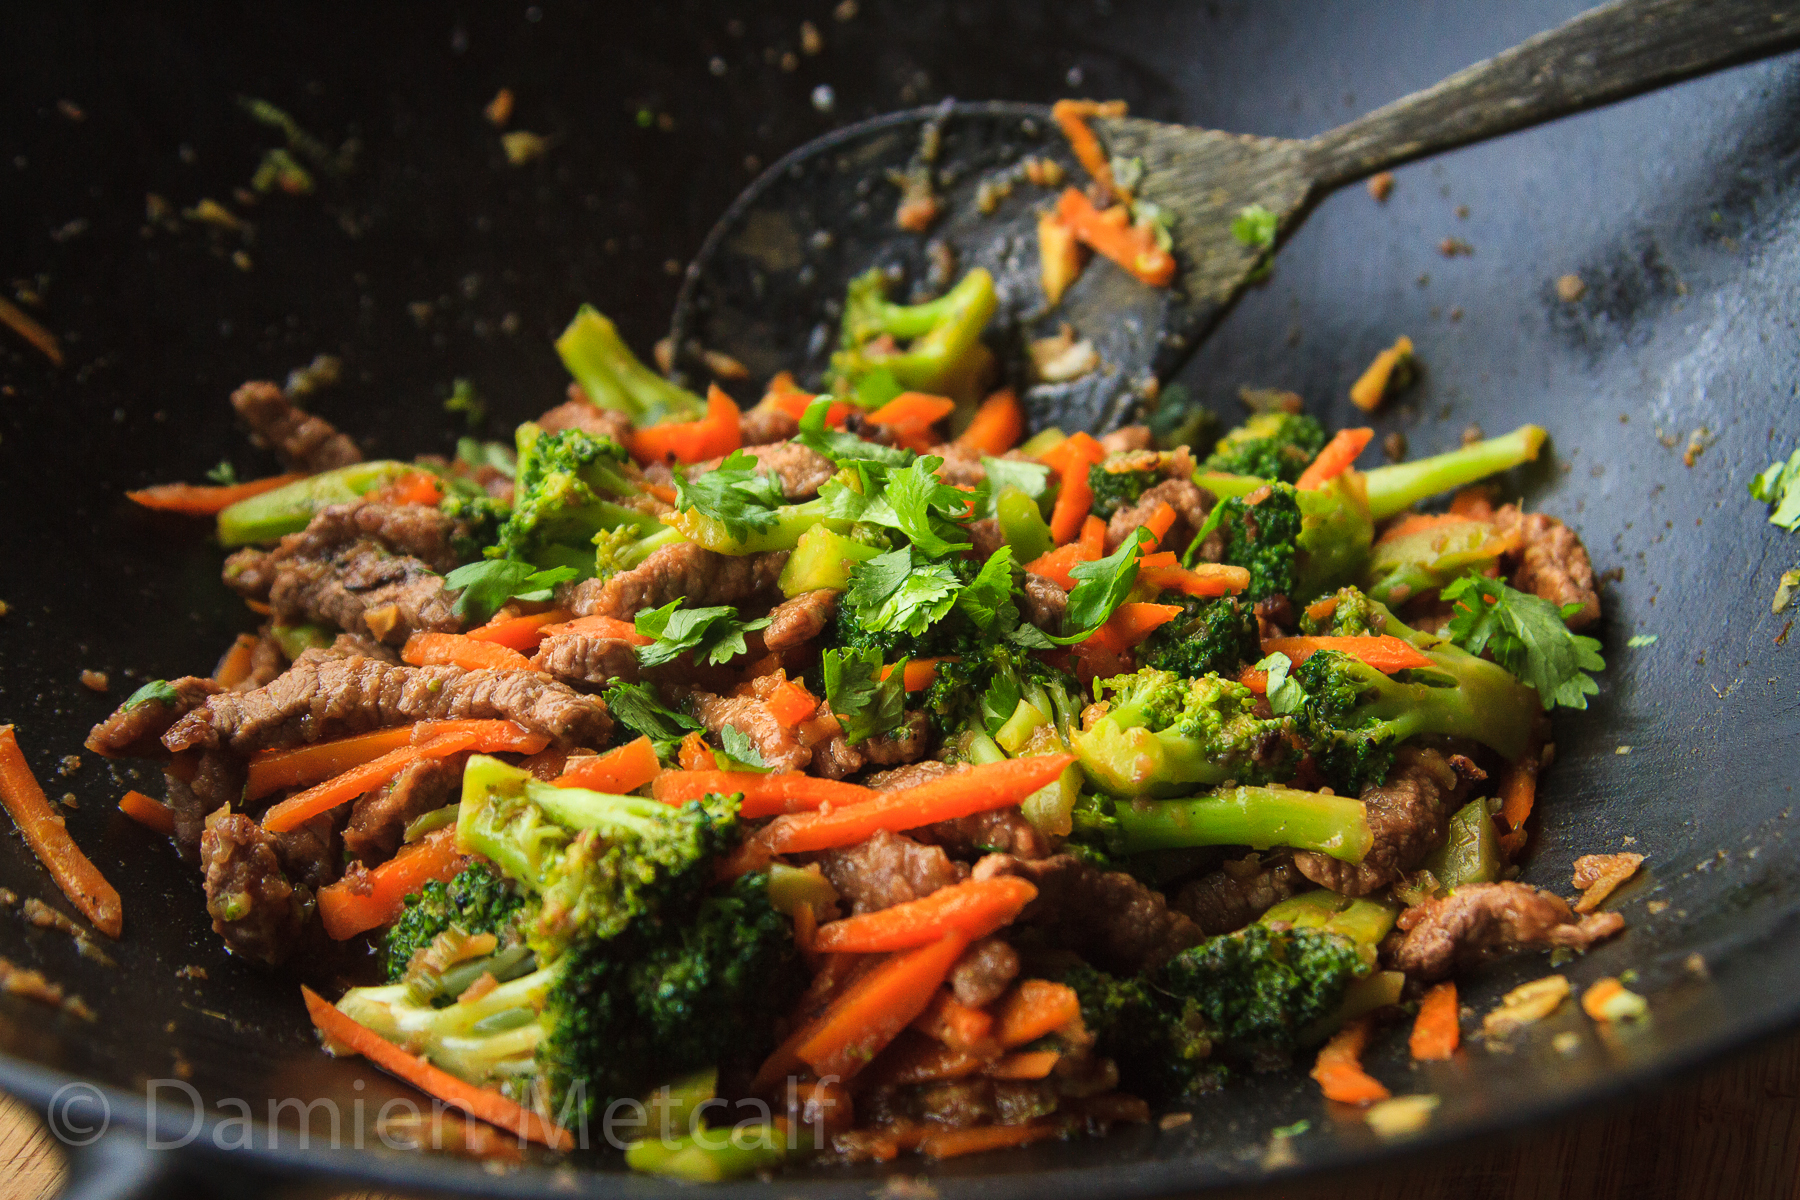 Broccoli Stir-Fry With Nuts | The Natural Psoriasis Treatment Program